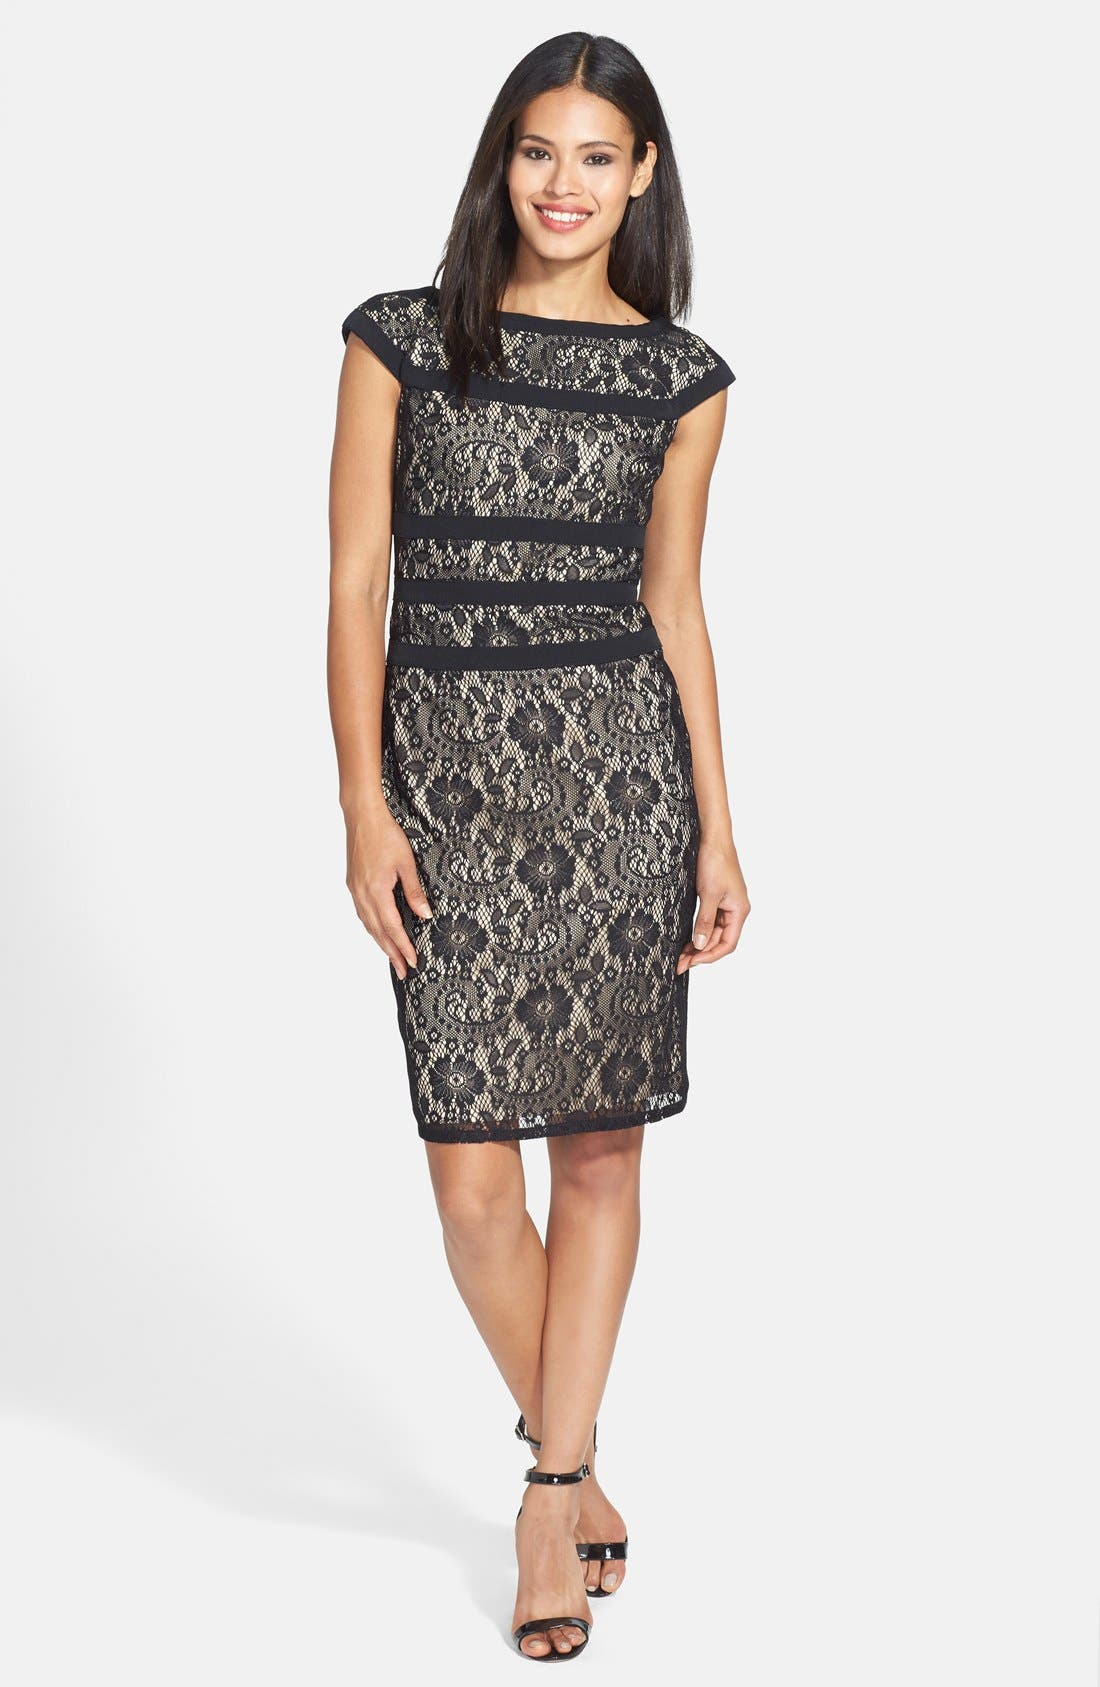 ADRIANNA PAPELL, Lace Sheath Dress, Alternate thumbnail 2, color, 001